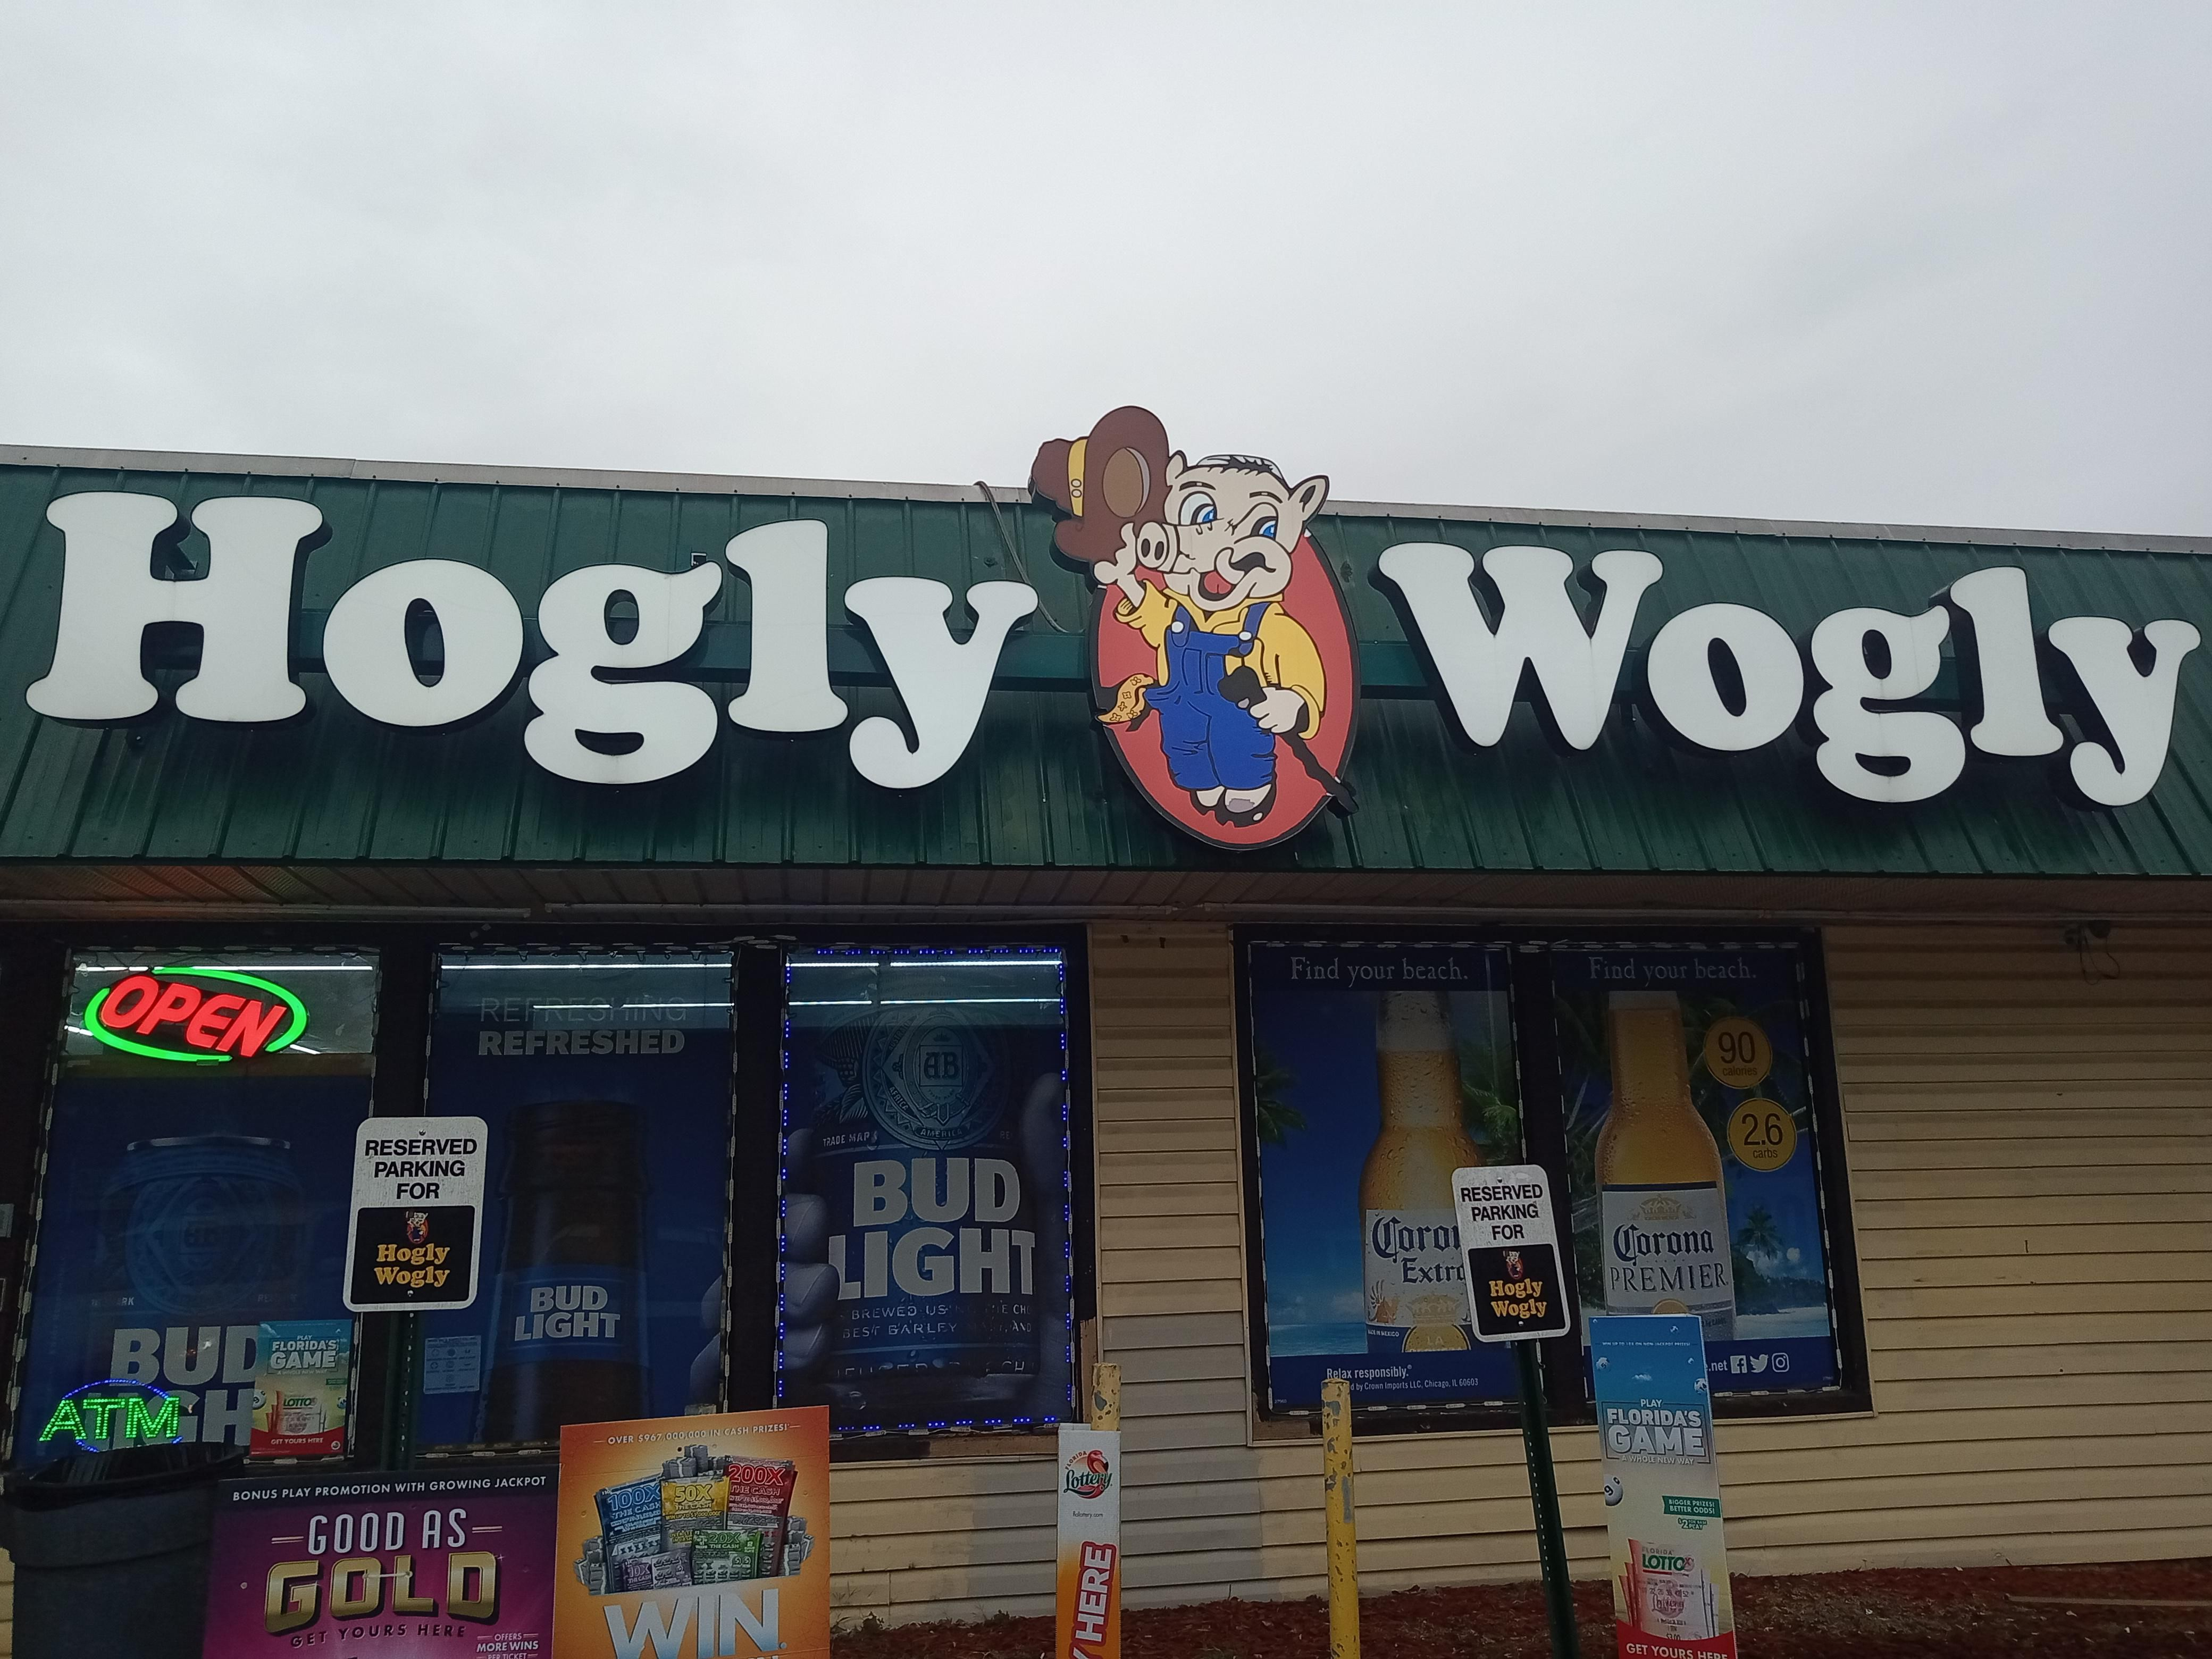 For when the Piggly Wiggly is just a little too upscale